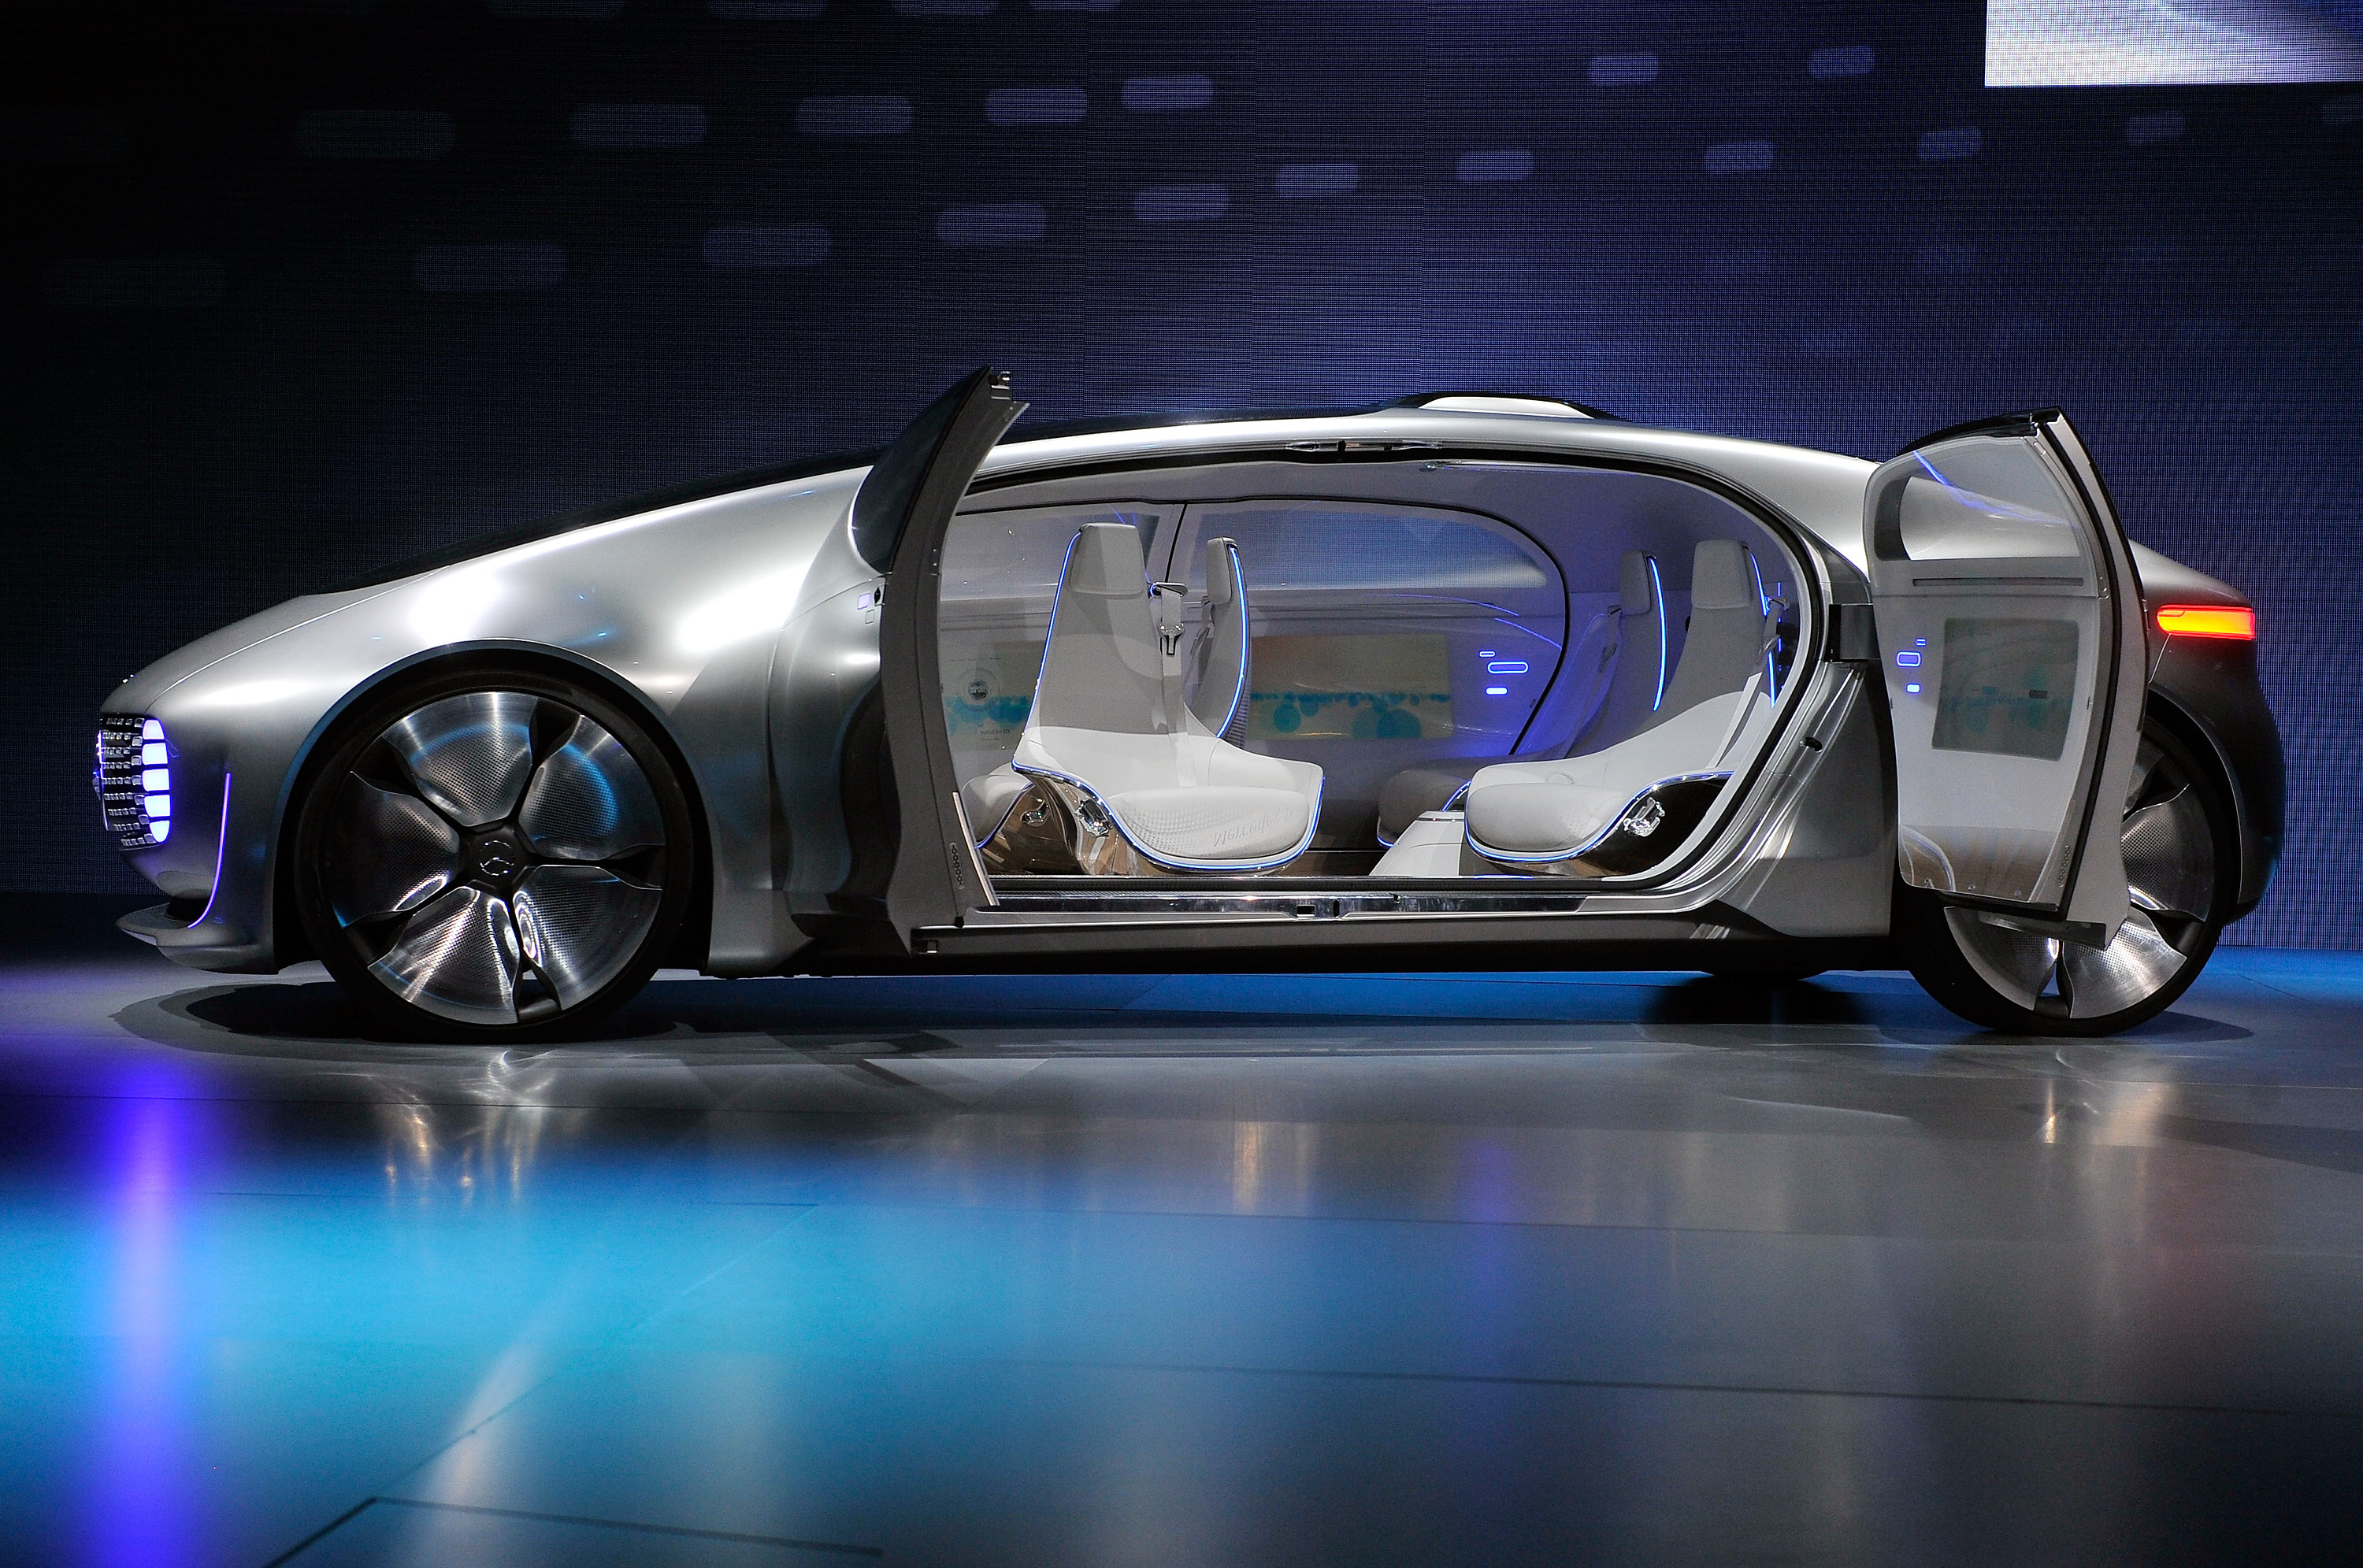 A Mercedes-Benz  F 015 autonomous driving automobile is displayed at the Mercedes-Benz press event at The Chelsea at The Cosmopolitan of Las Vegas for the 2015 International CES on January 5, 2015 in Las Vegas, Nevada. attendees.  (Photo by David Becker/Getty Images)